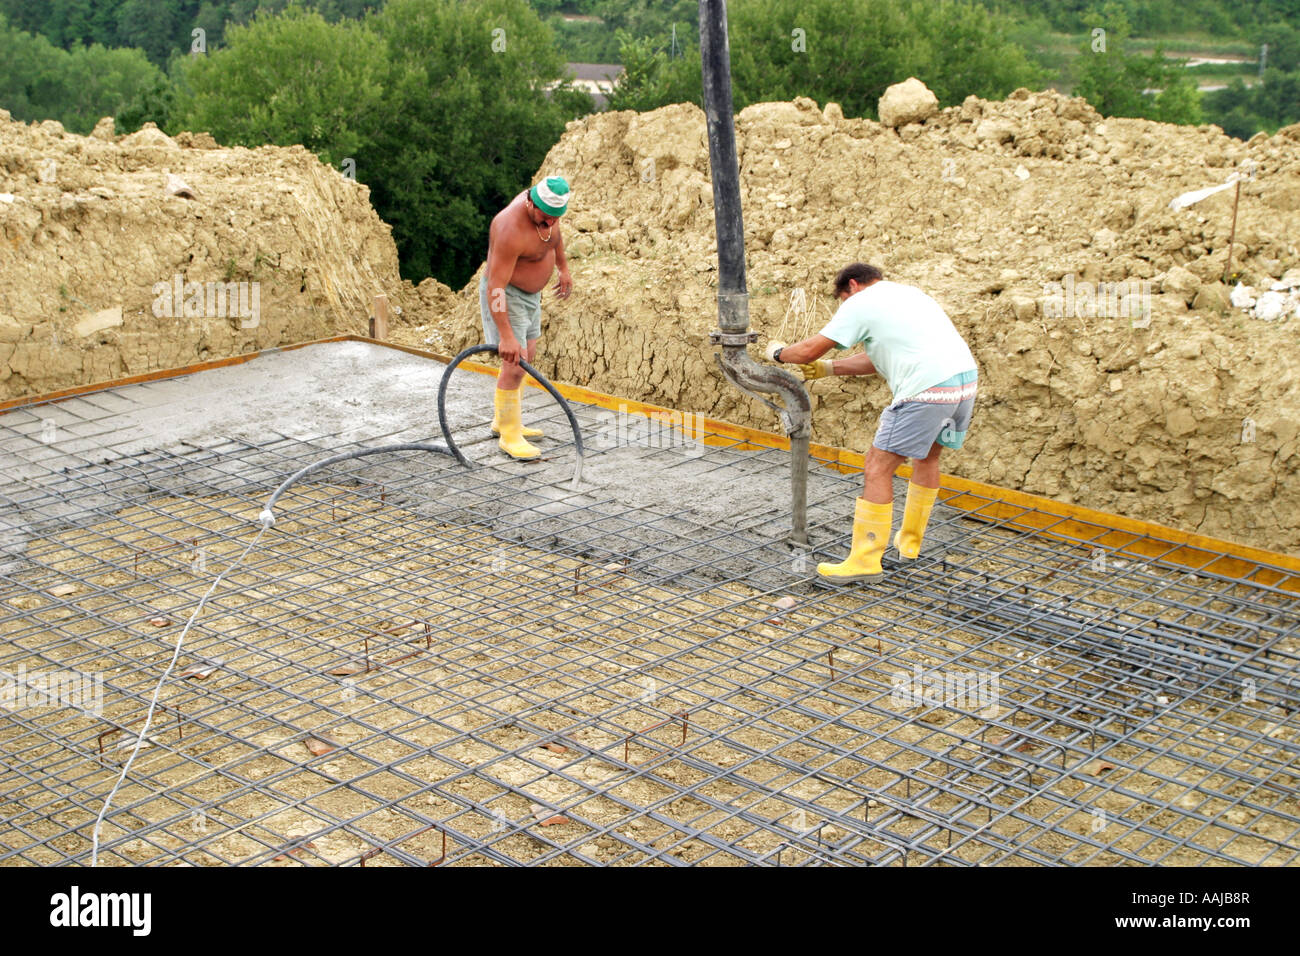 Laying A Reinforced Steel Cage Foundation For A Swimming Pool Le Stock Photo Royalty Free